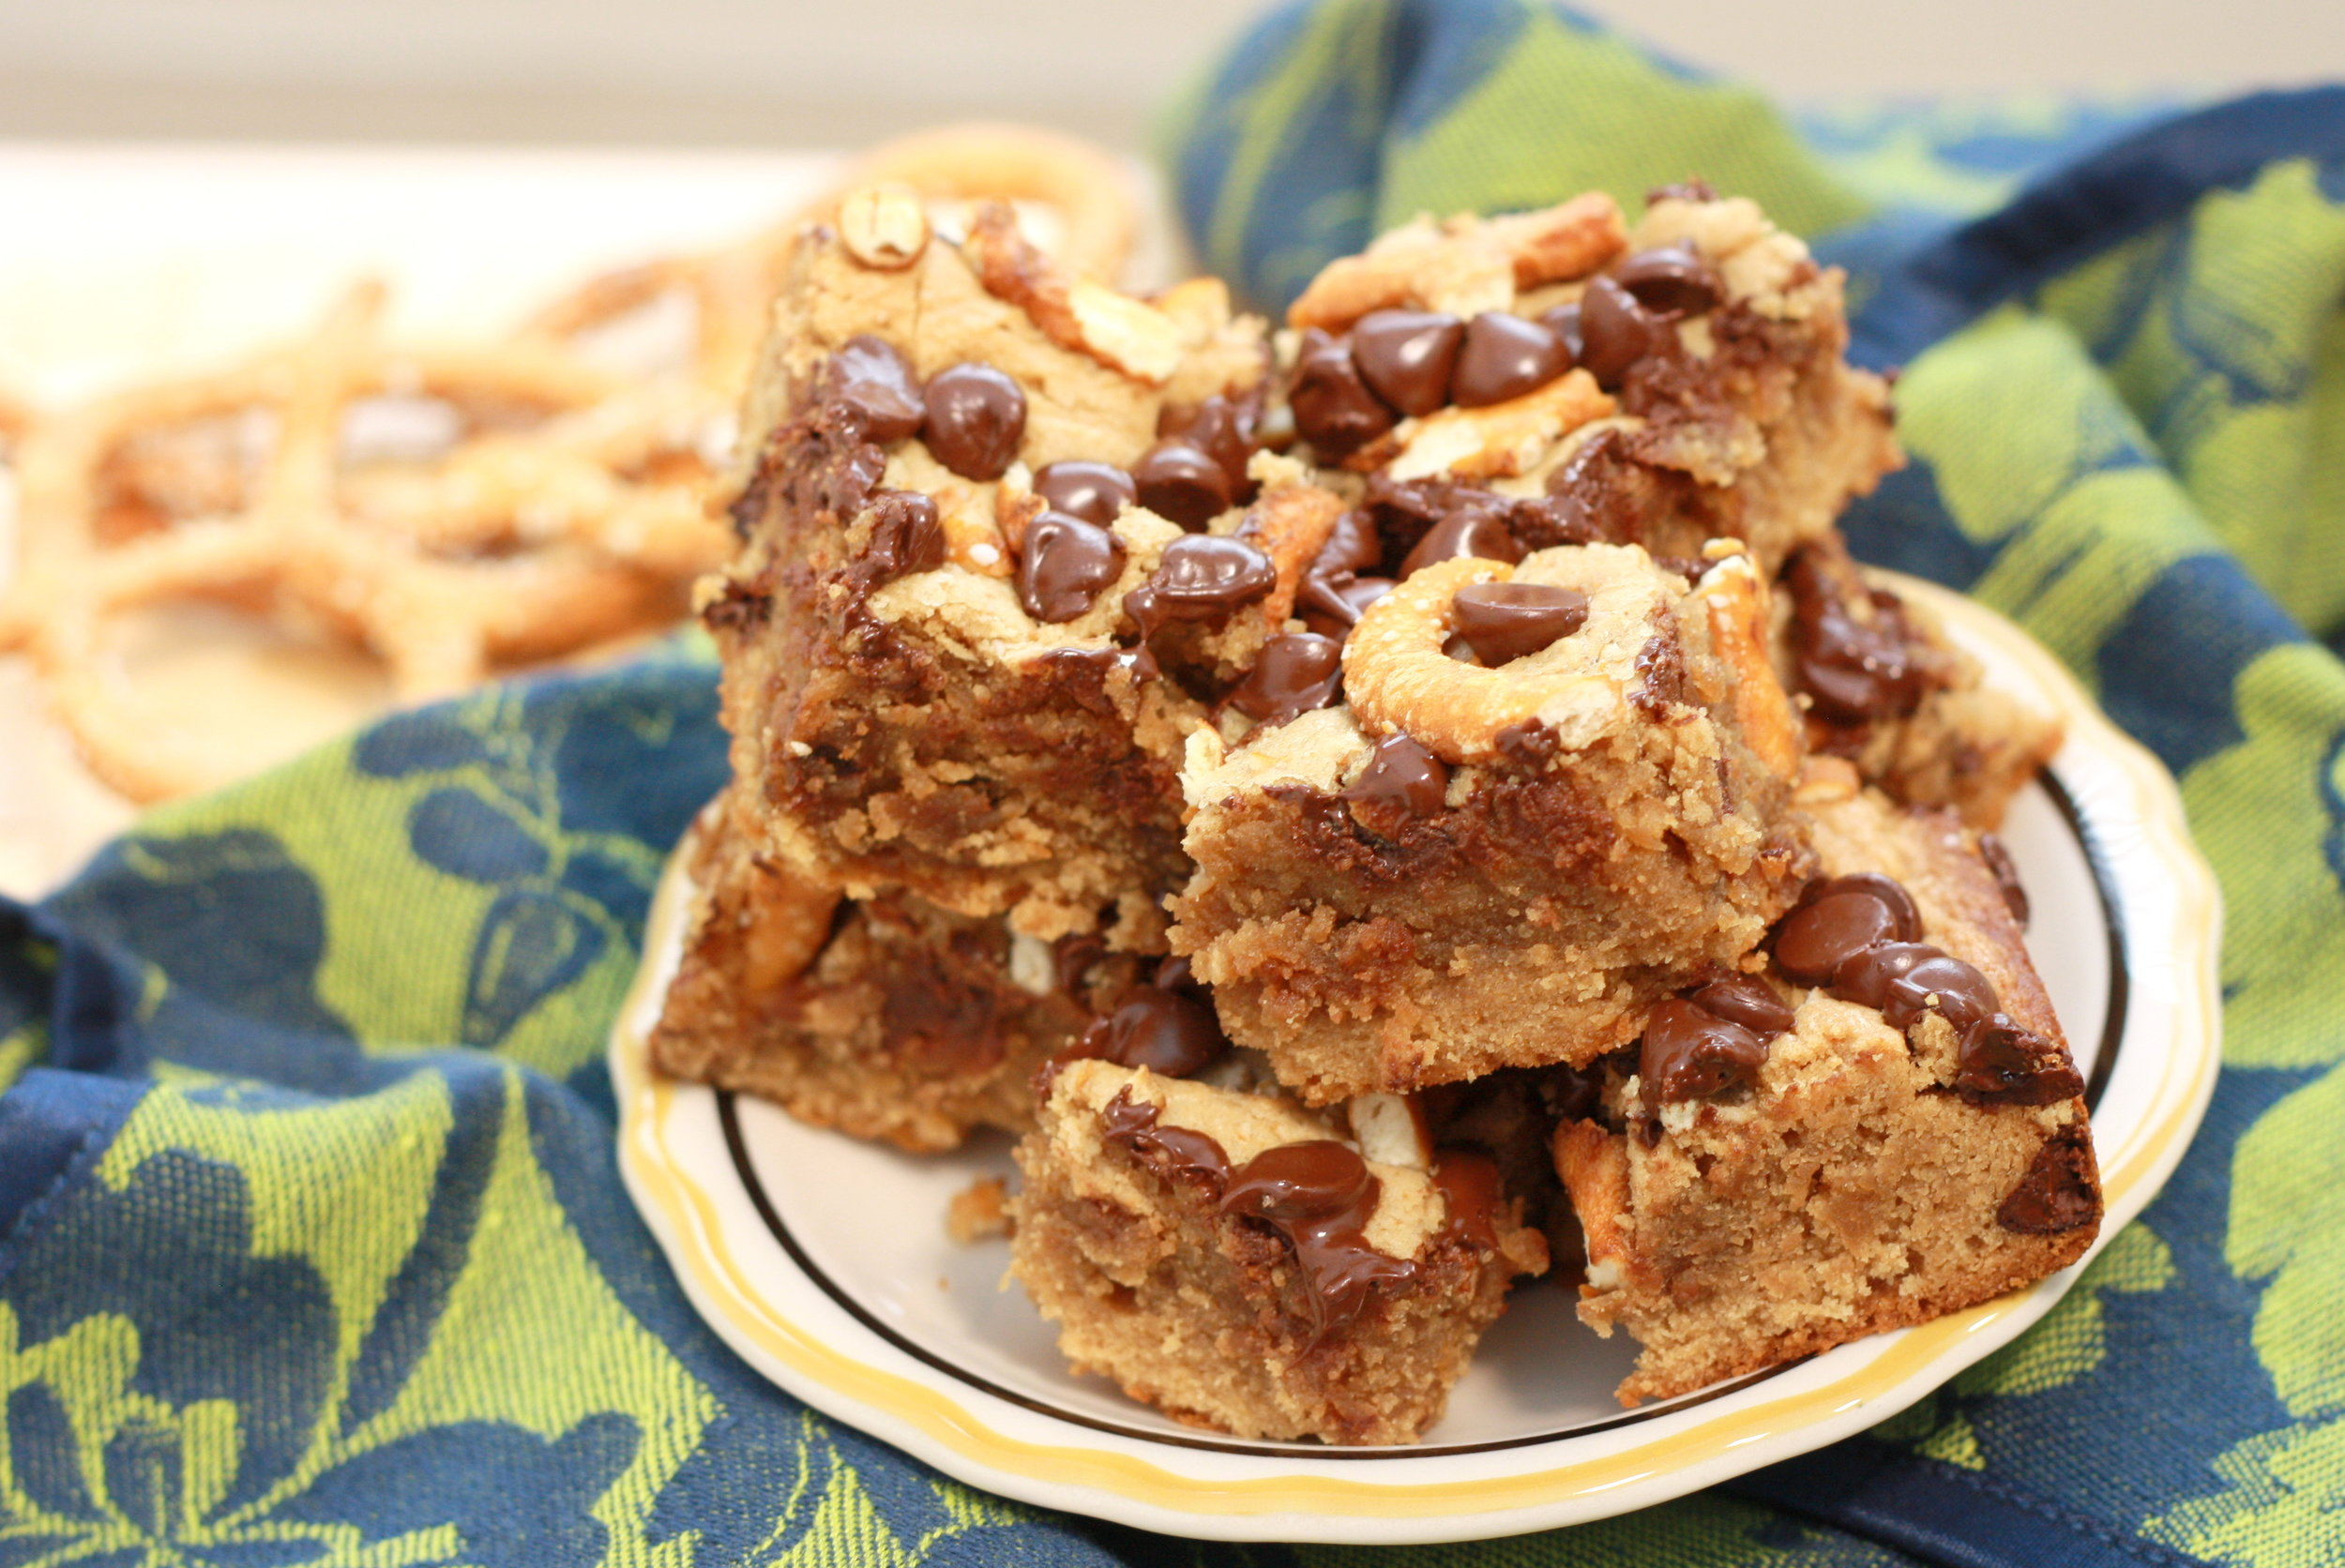 Chocolate Stout Pretzel Peanut Butter Bars2.JPG